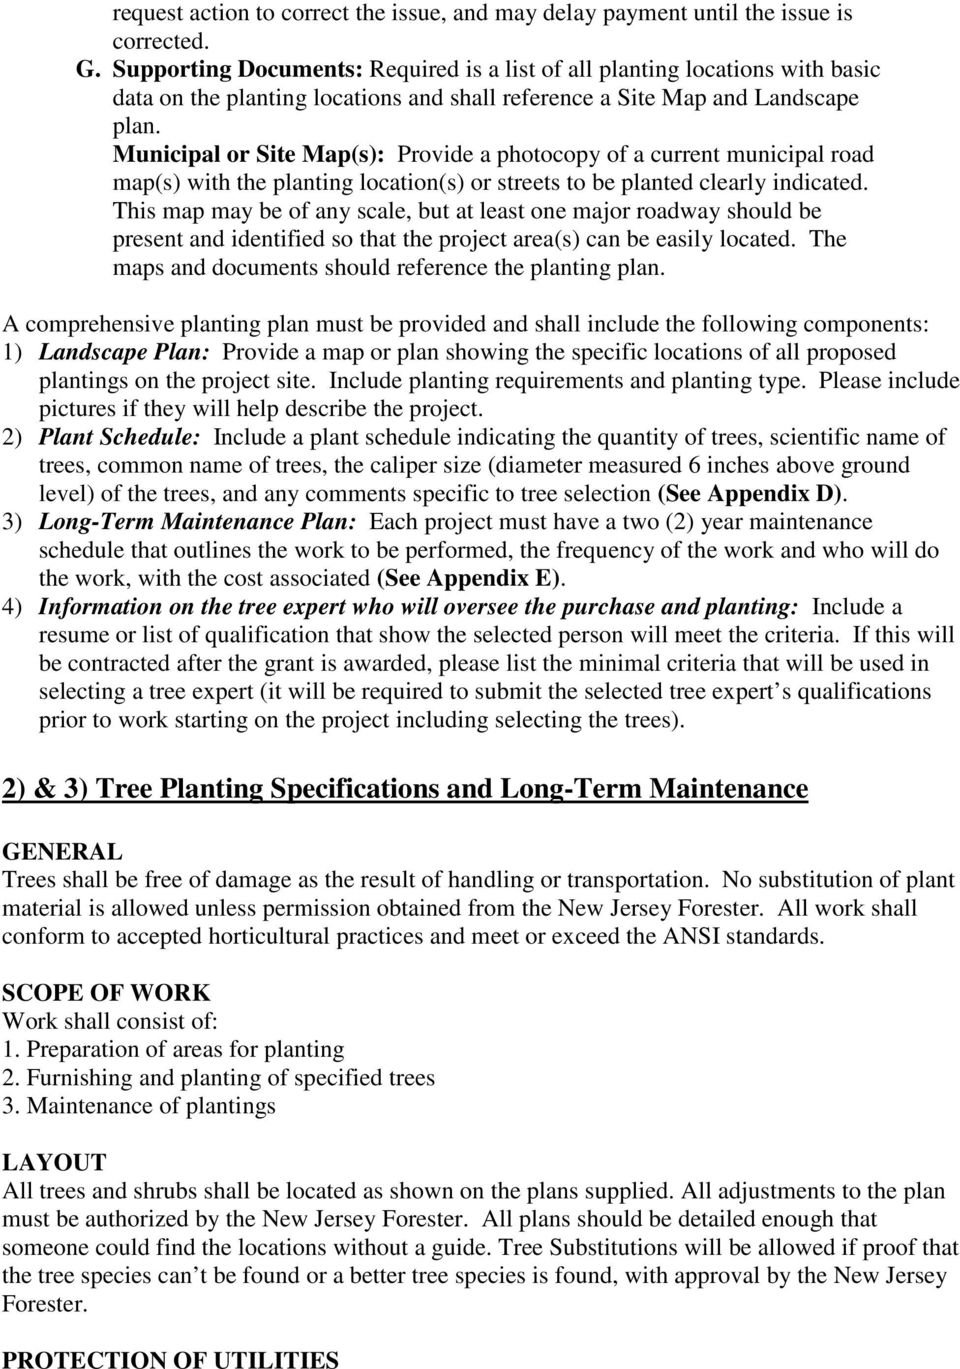 Municipal or Site Map(s): Provide a photocopy of a current municipal road map(s) with the planting location(s) or streets to be planted clearly indicated.